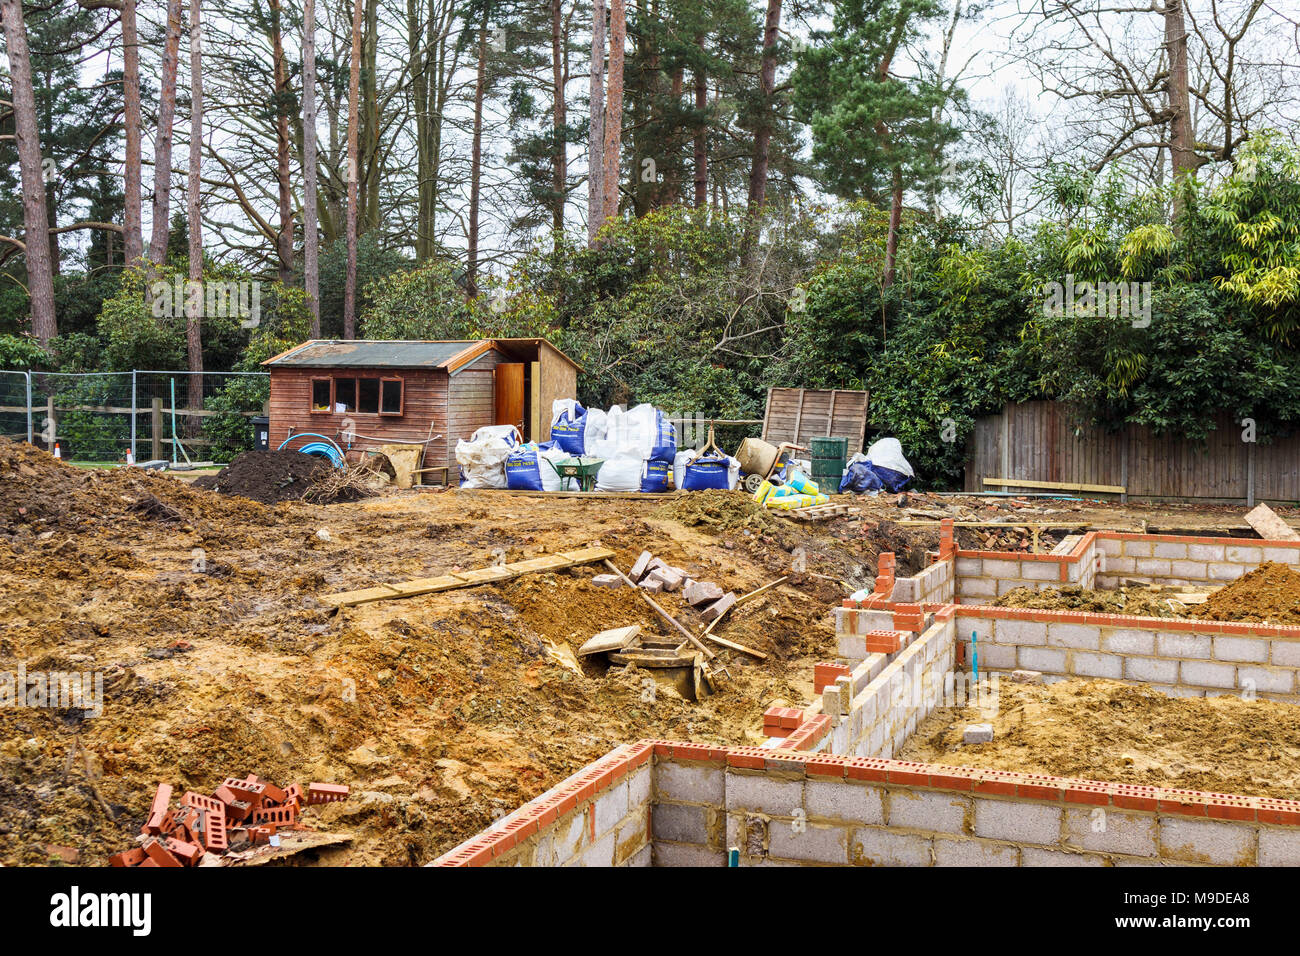 Awesome Brick And Breeze Block Foundations For A New House On A Construction Site  For A New